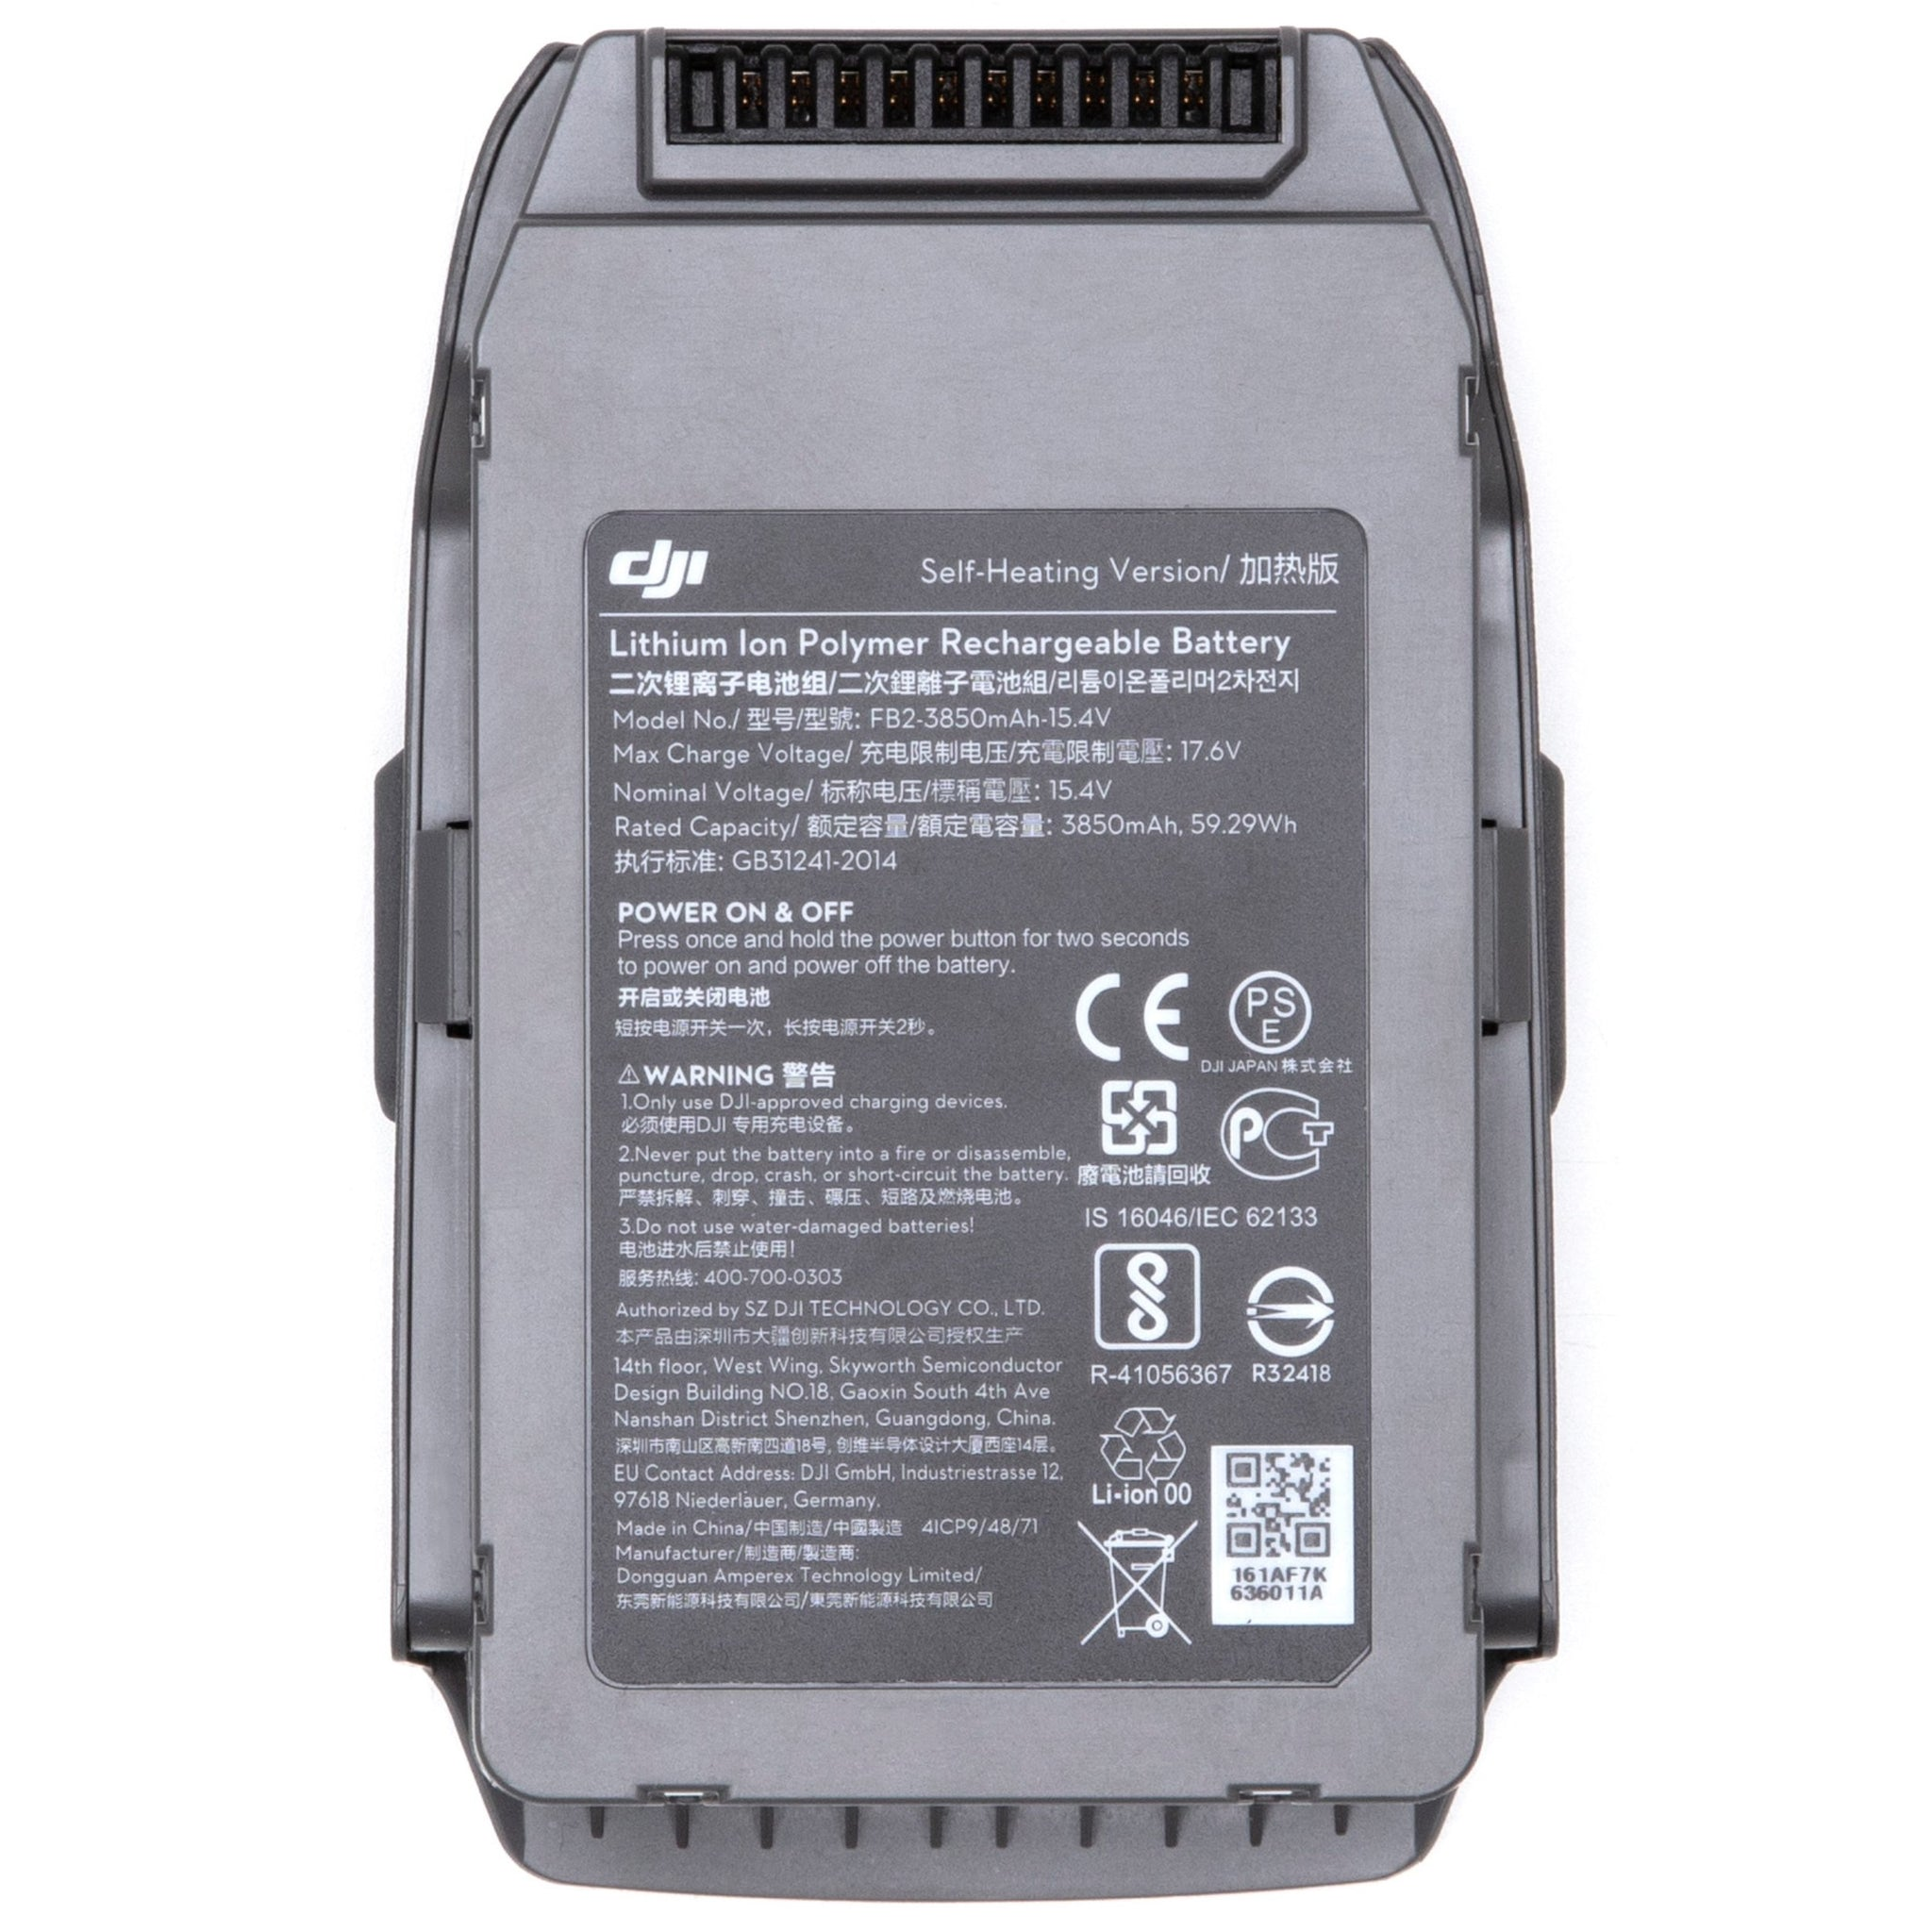 Mavic 2 Enterprise Intelligent Flight Battery